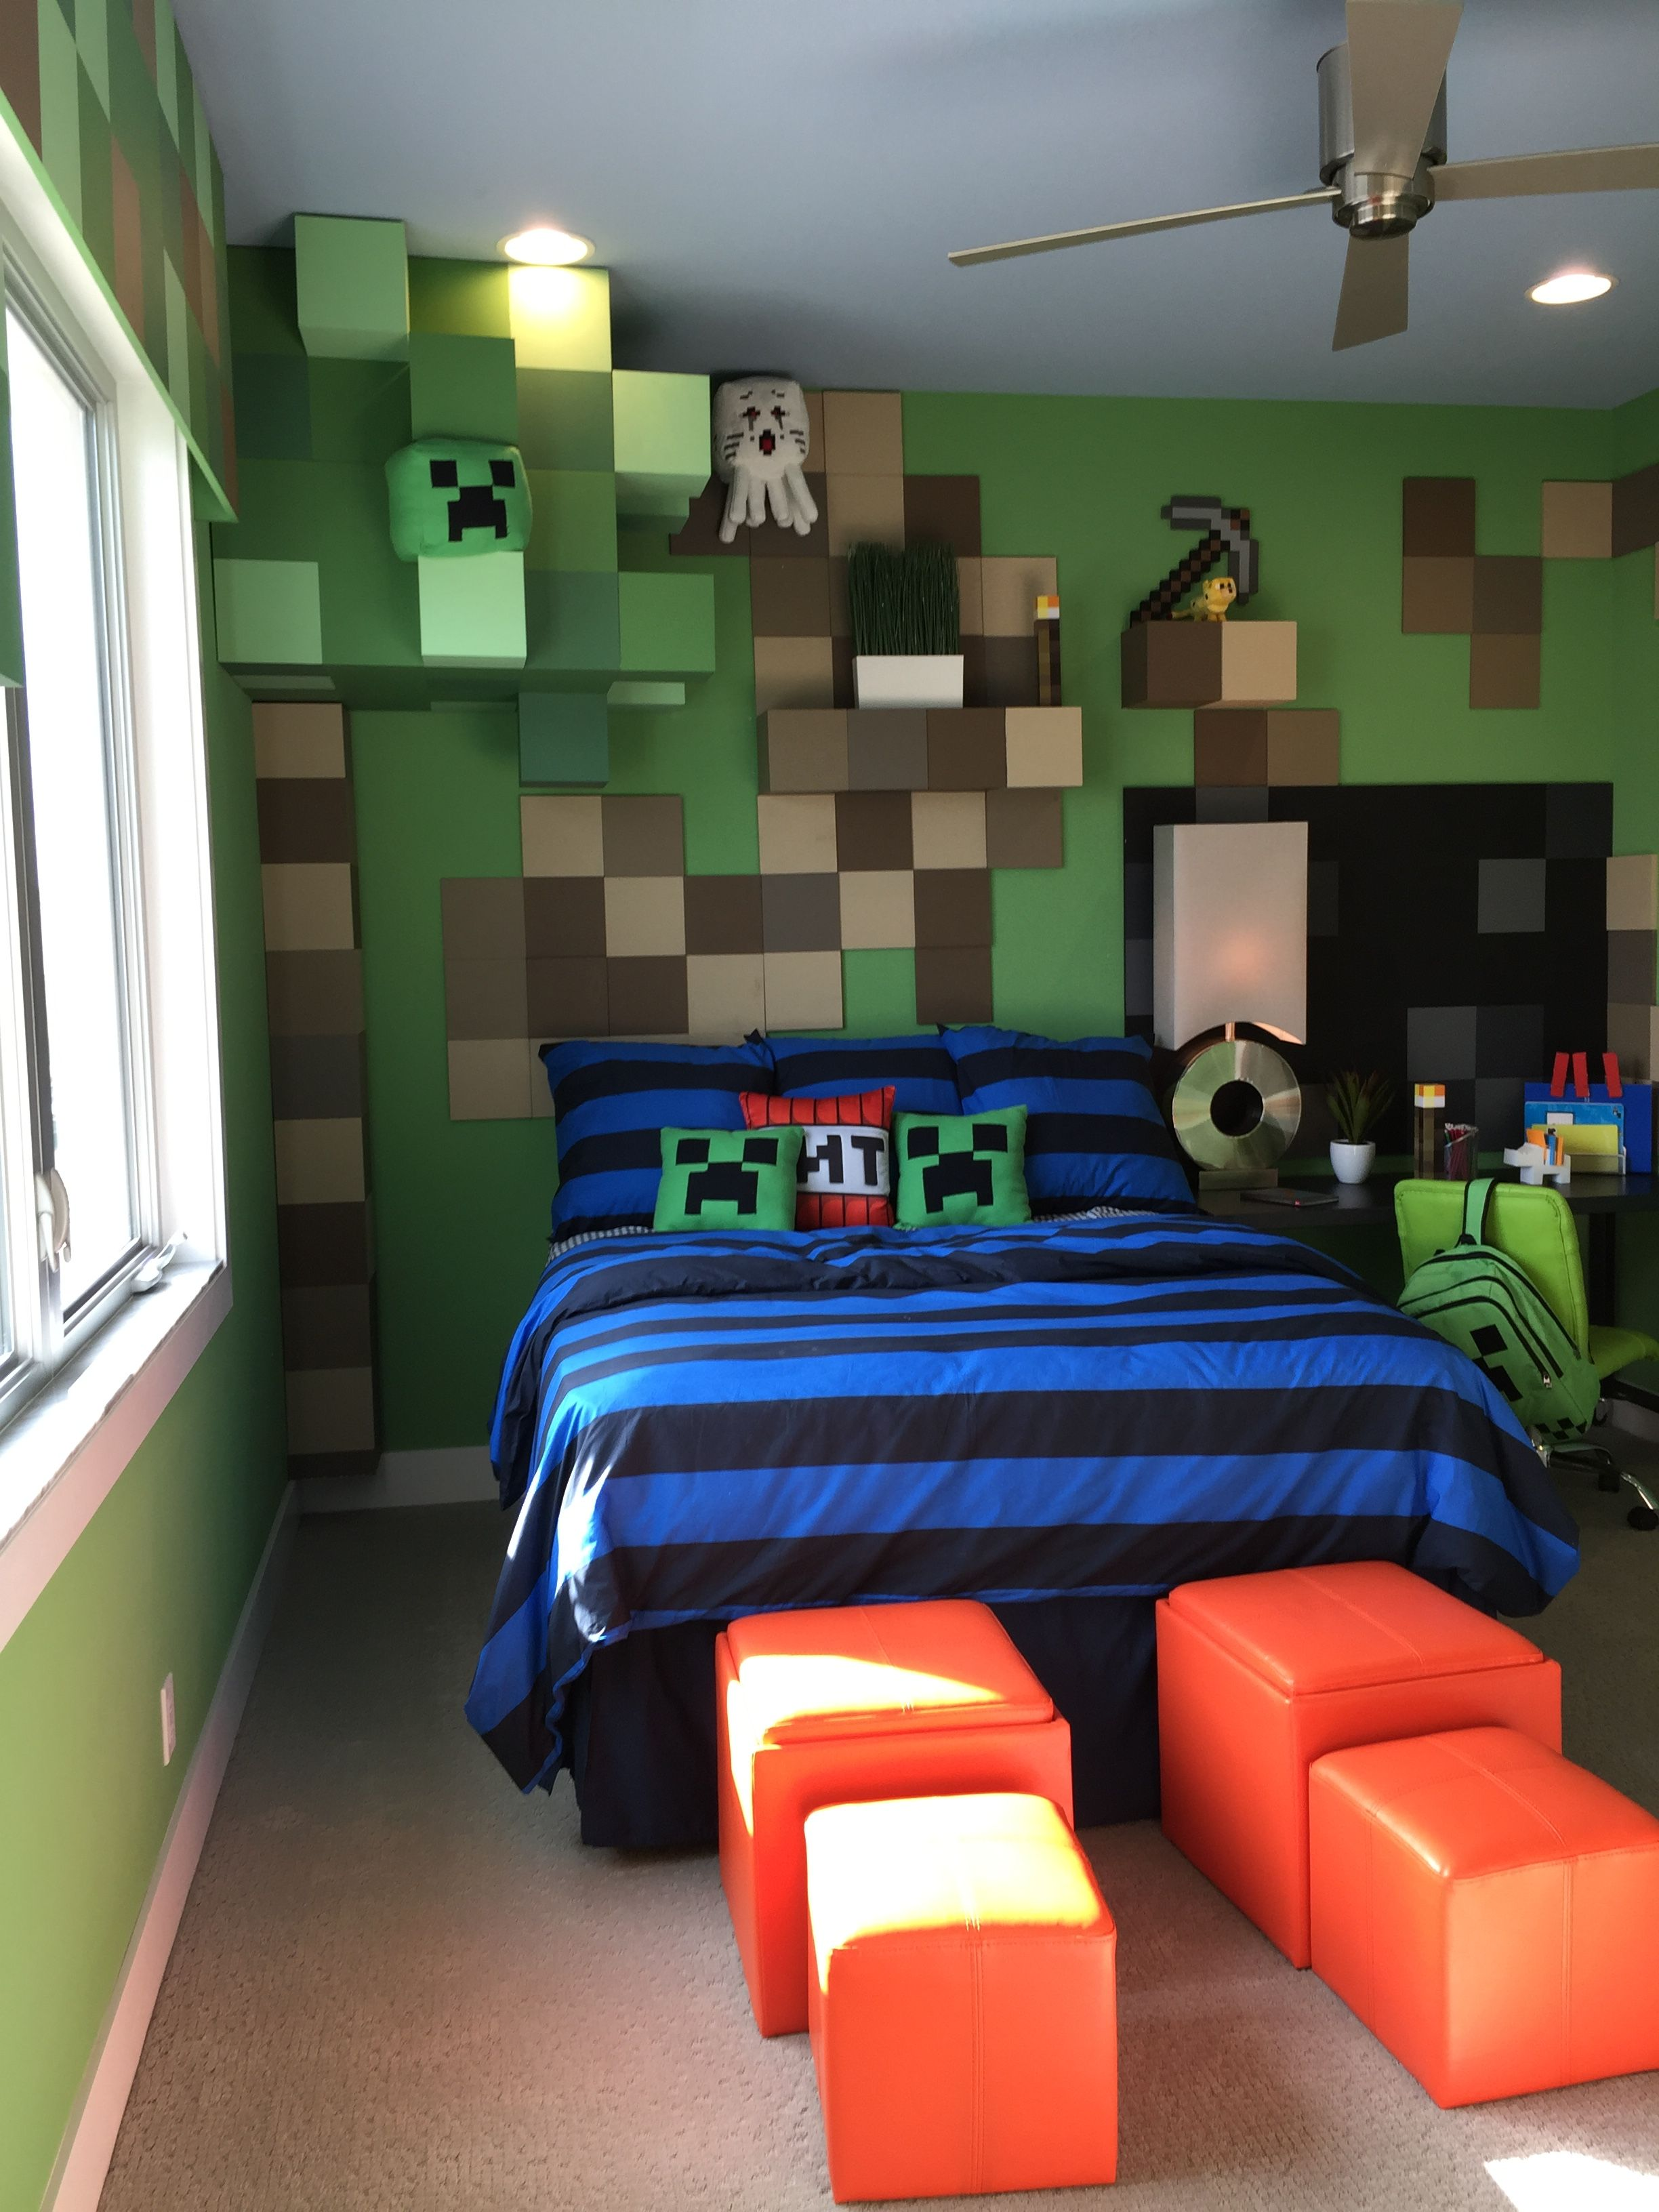 Great Minecraft Styled Room Cool Bedrooms For Boys